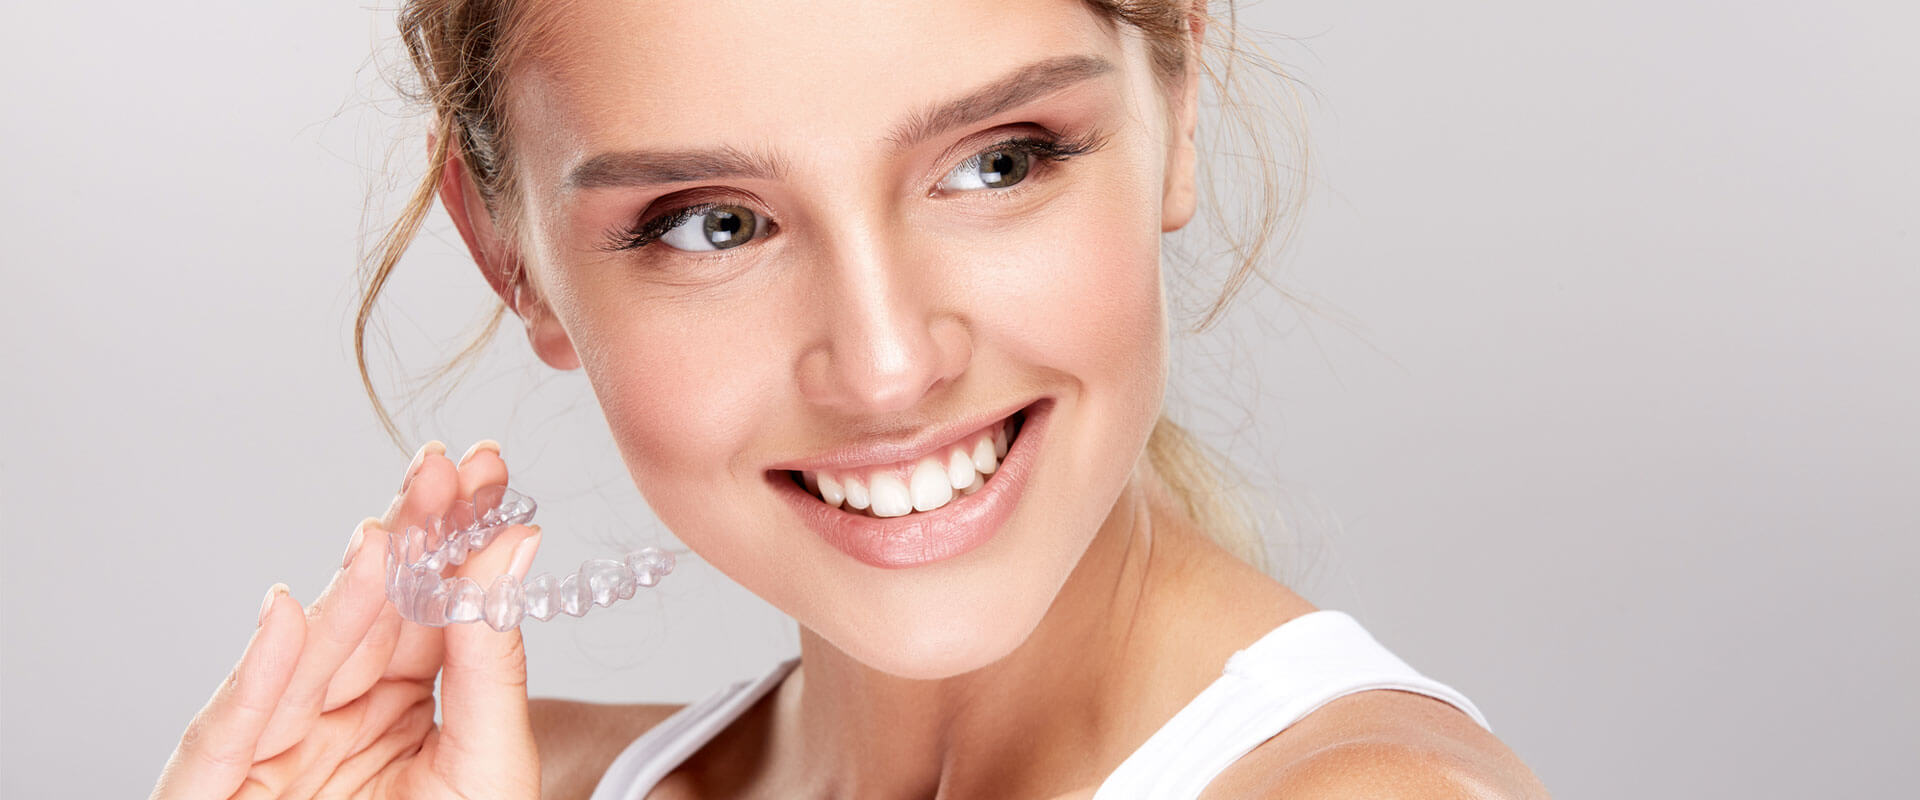 Smiling young woman holding Invisalign braces